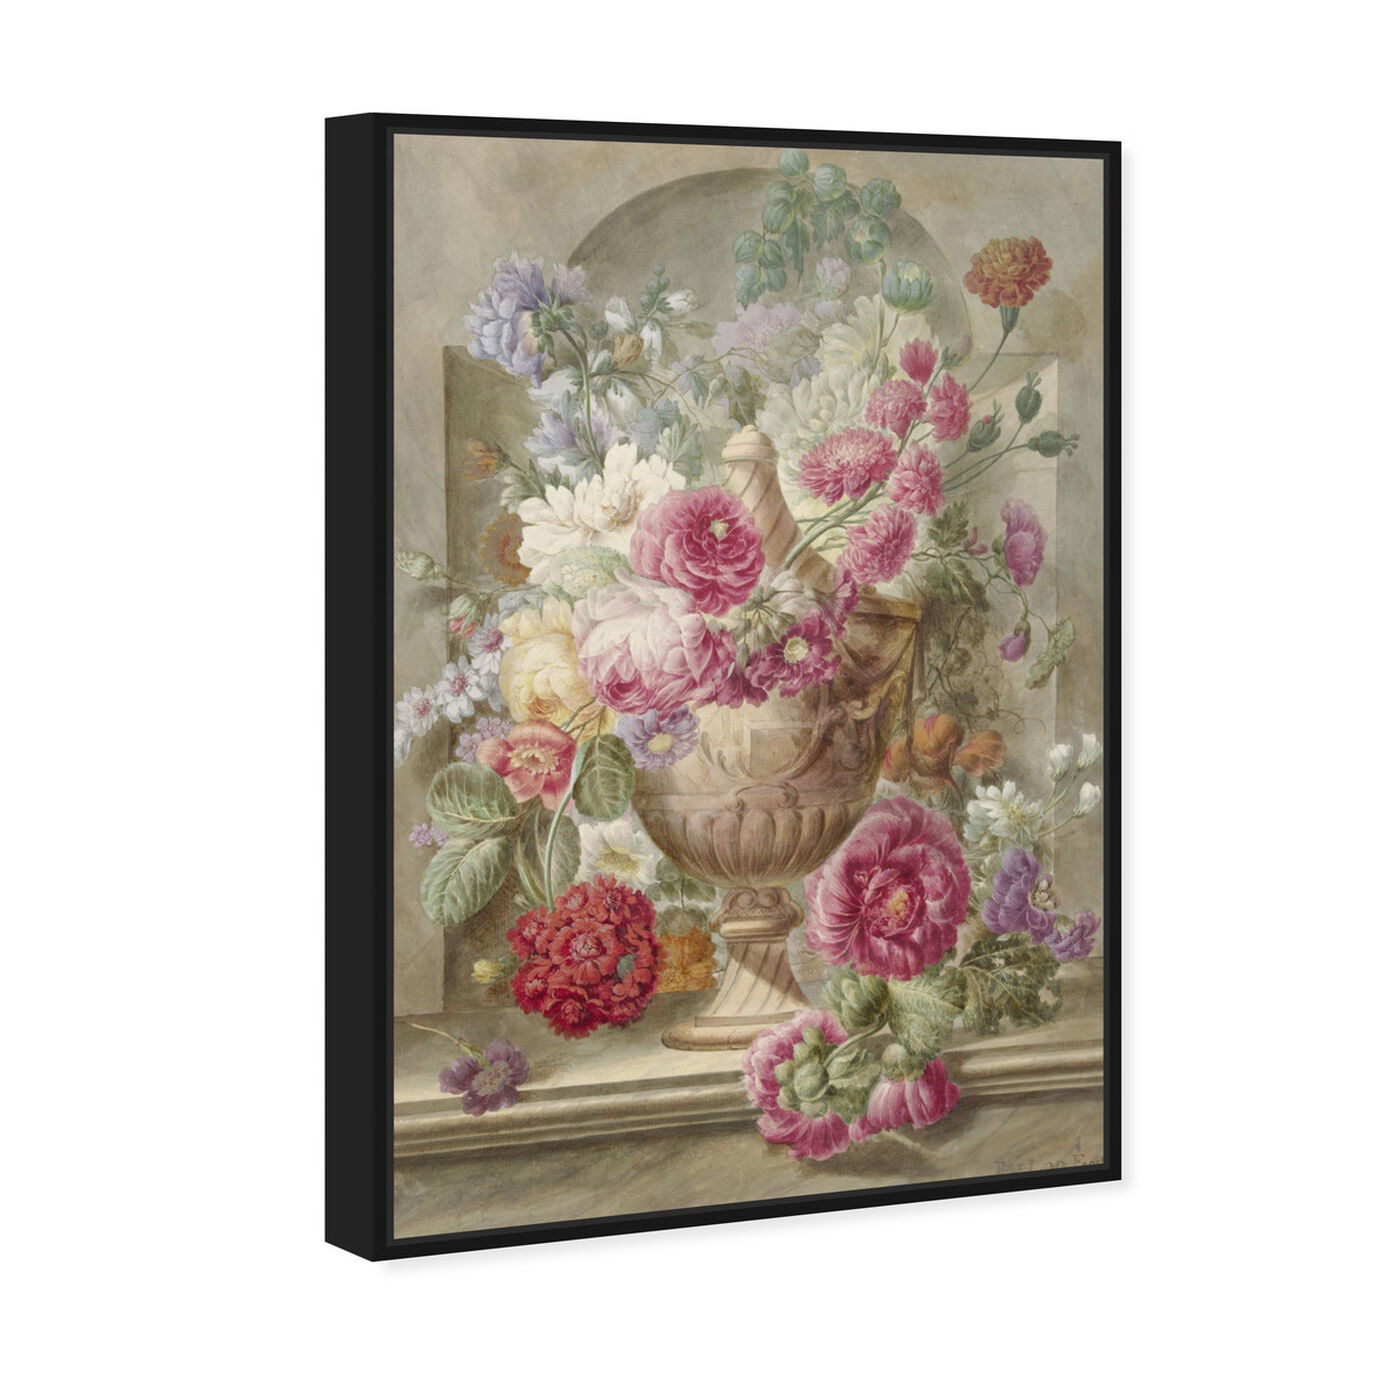 Angled view of Flower Arrangement XII - The Art Cabinet featuring floral and botanical and florals art.